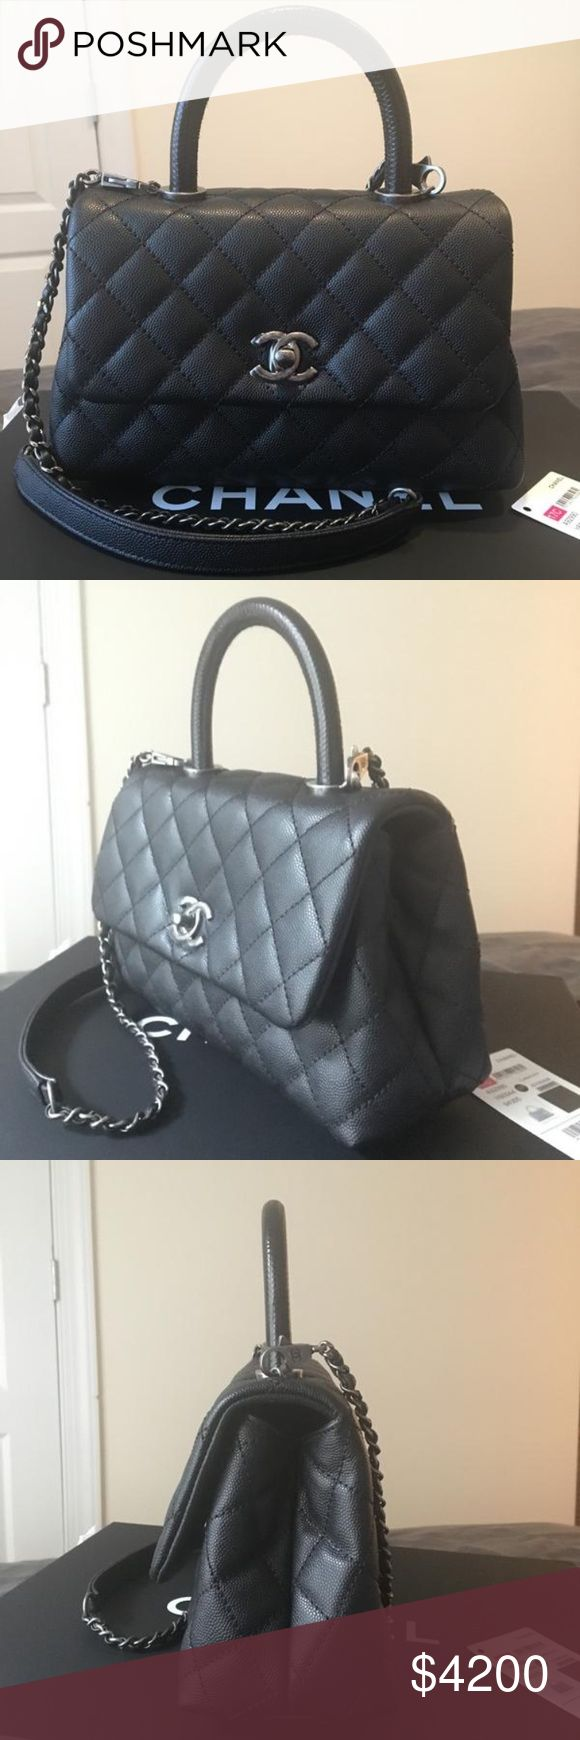 NWT 2017 Chanel Kelly Mini Handbag NWT 2017 17C Black Caviar with lizard handle - Chanel Kelly Classic Bag. Never worn, comes with authenticity card, dustbag, tickets, box. So cute and perfect for everyday, can be worn as top handle or crossbody. Message me for questions. Better pricing on 🅿️🅿️ CHANEL Bags Crossbody Bags